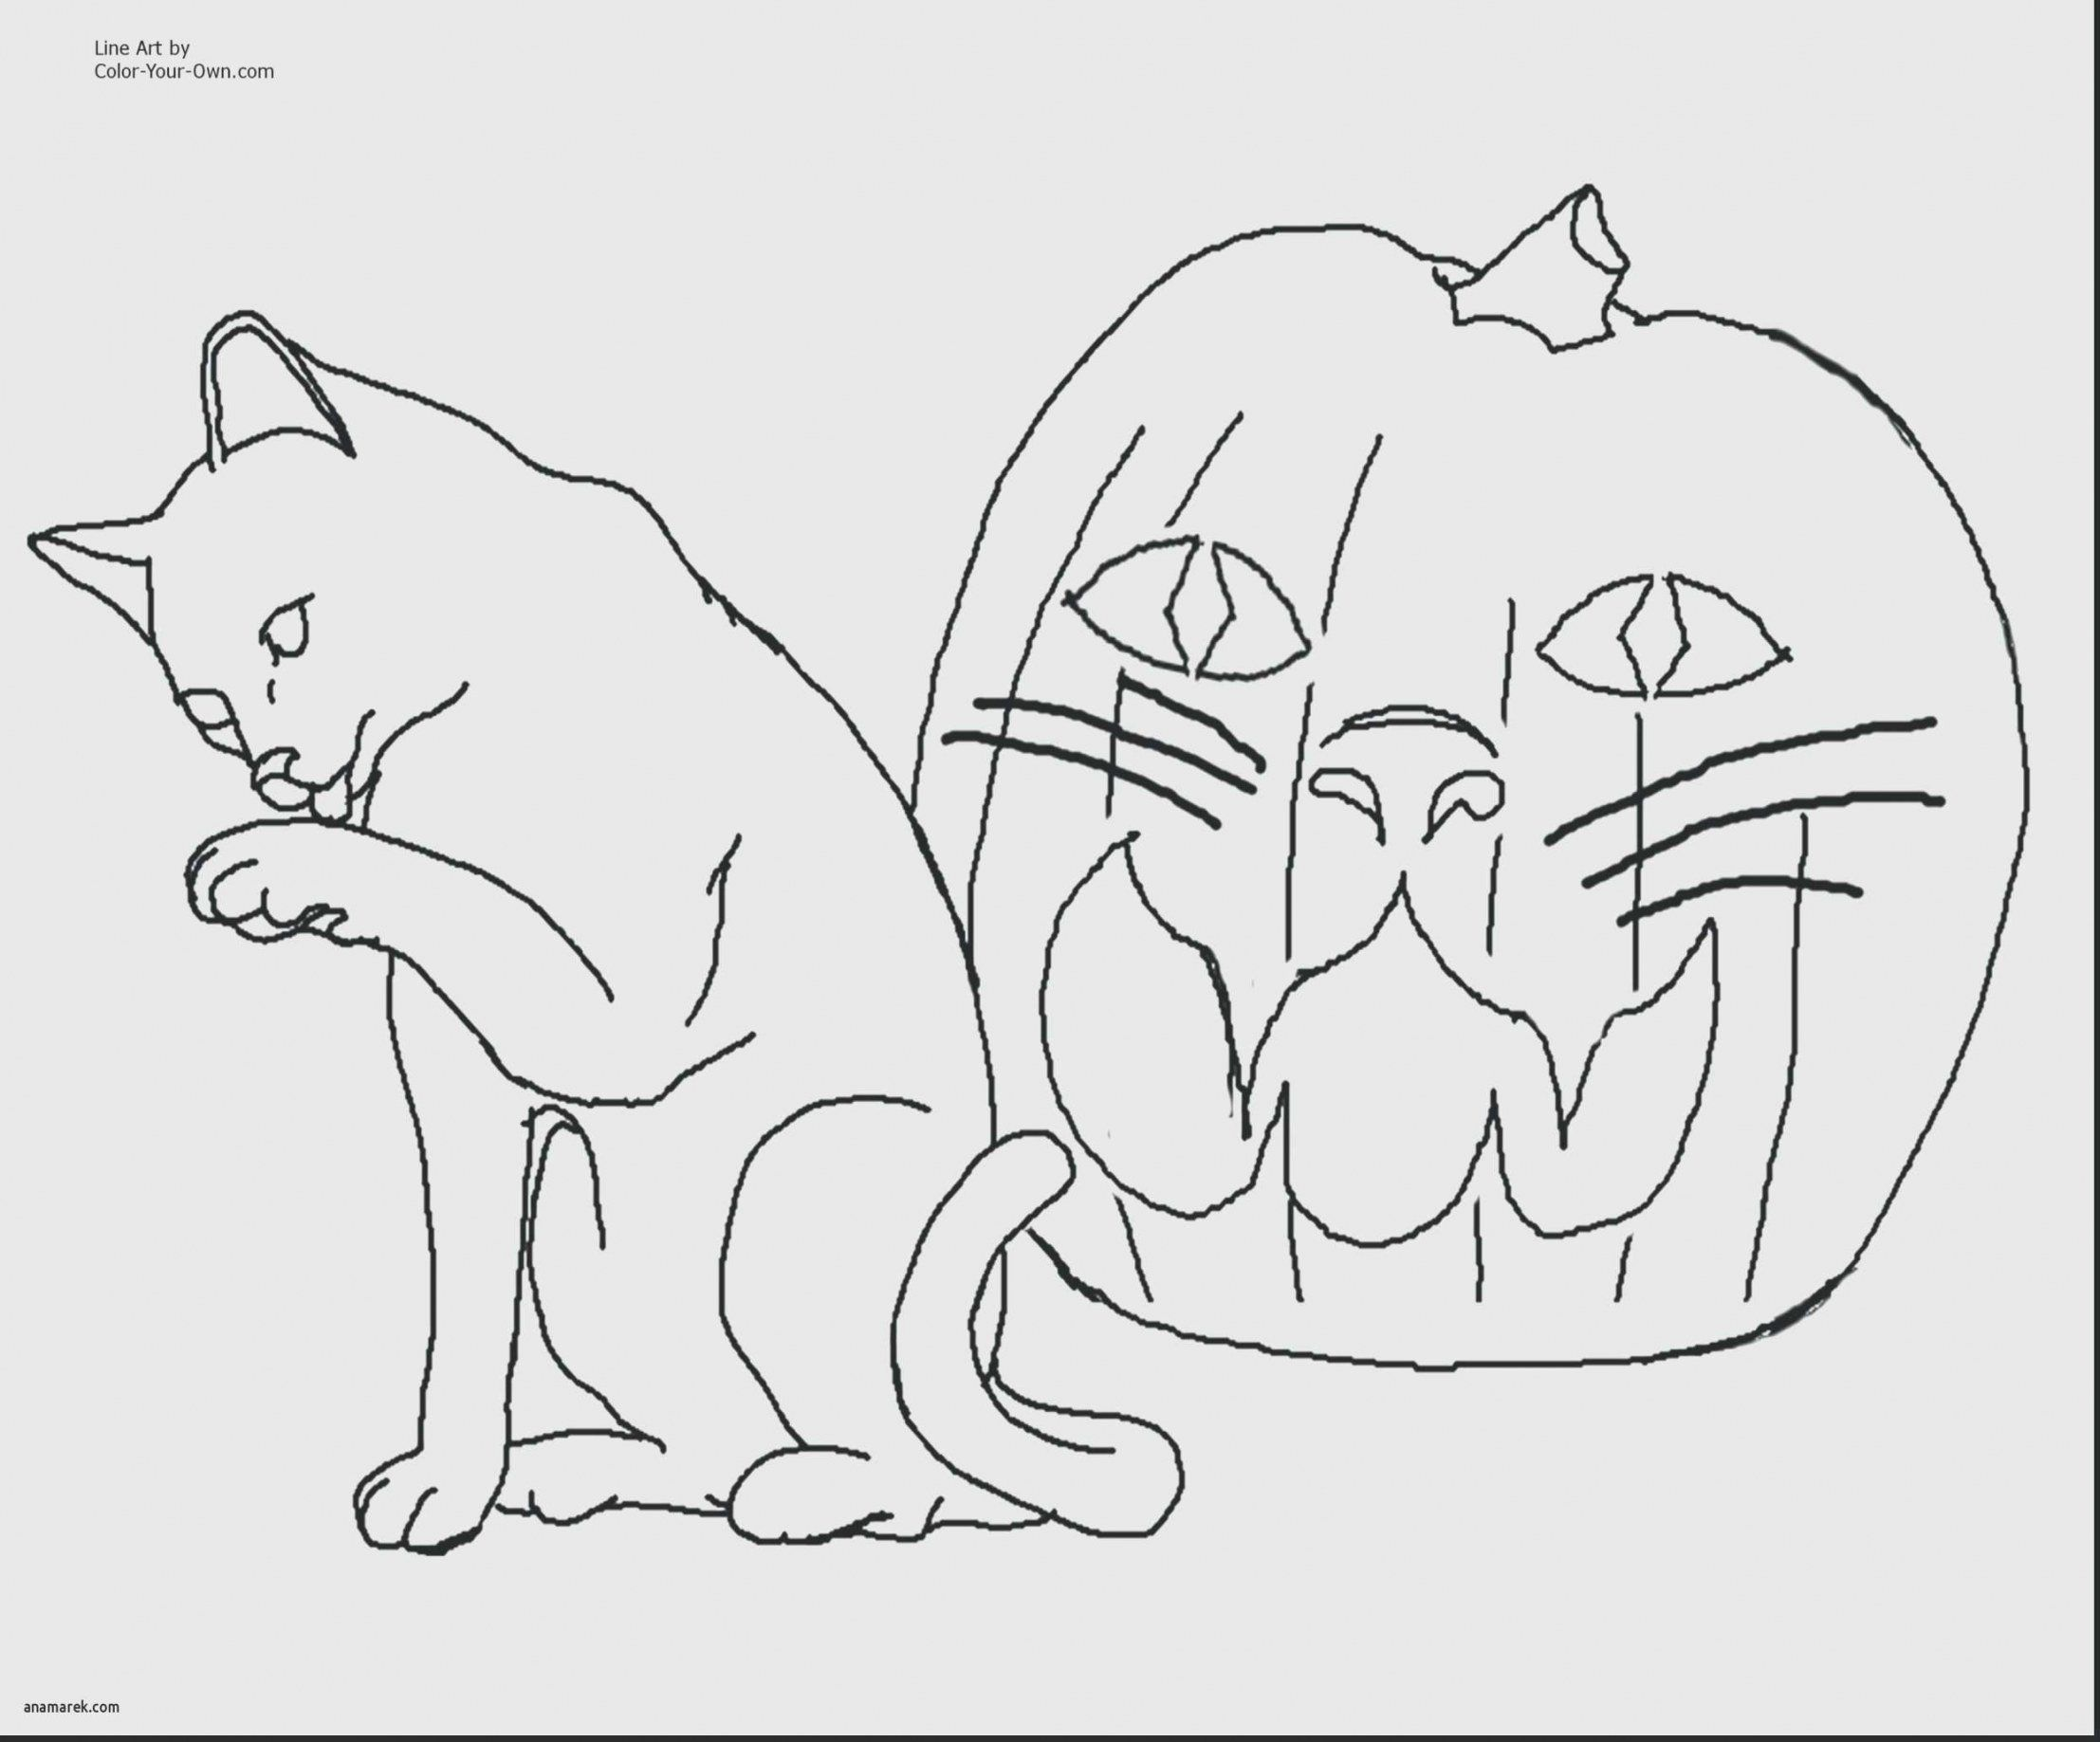 Halloween Cat Coloring Pictures Lovely Unicorn Cat Coloring Pages Picasso Coloring Pages Toiyeuemz Nyan Cat Beautiful [ 1837 x 2214 Pixel ]